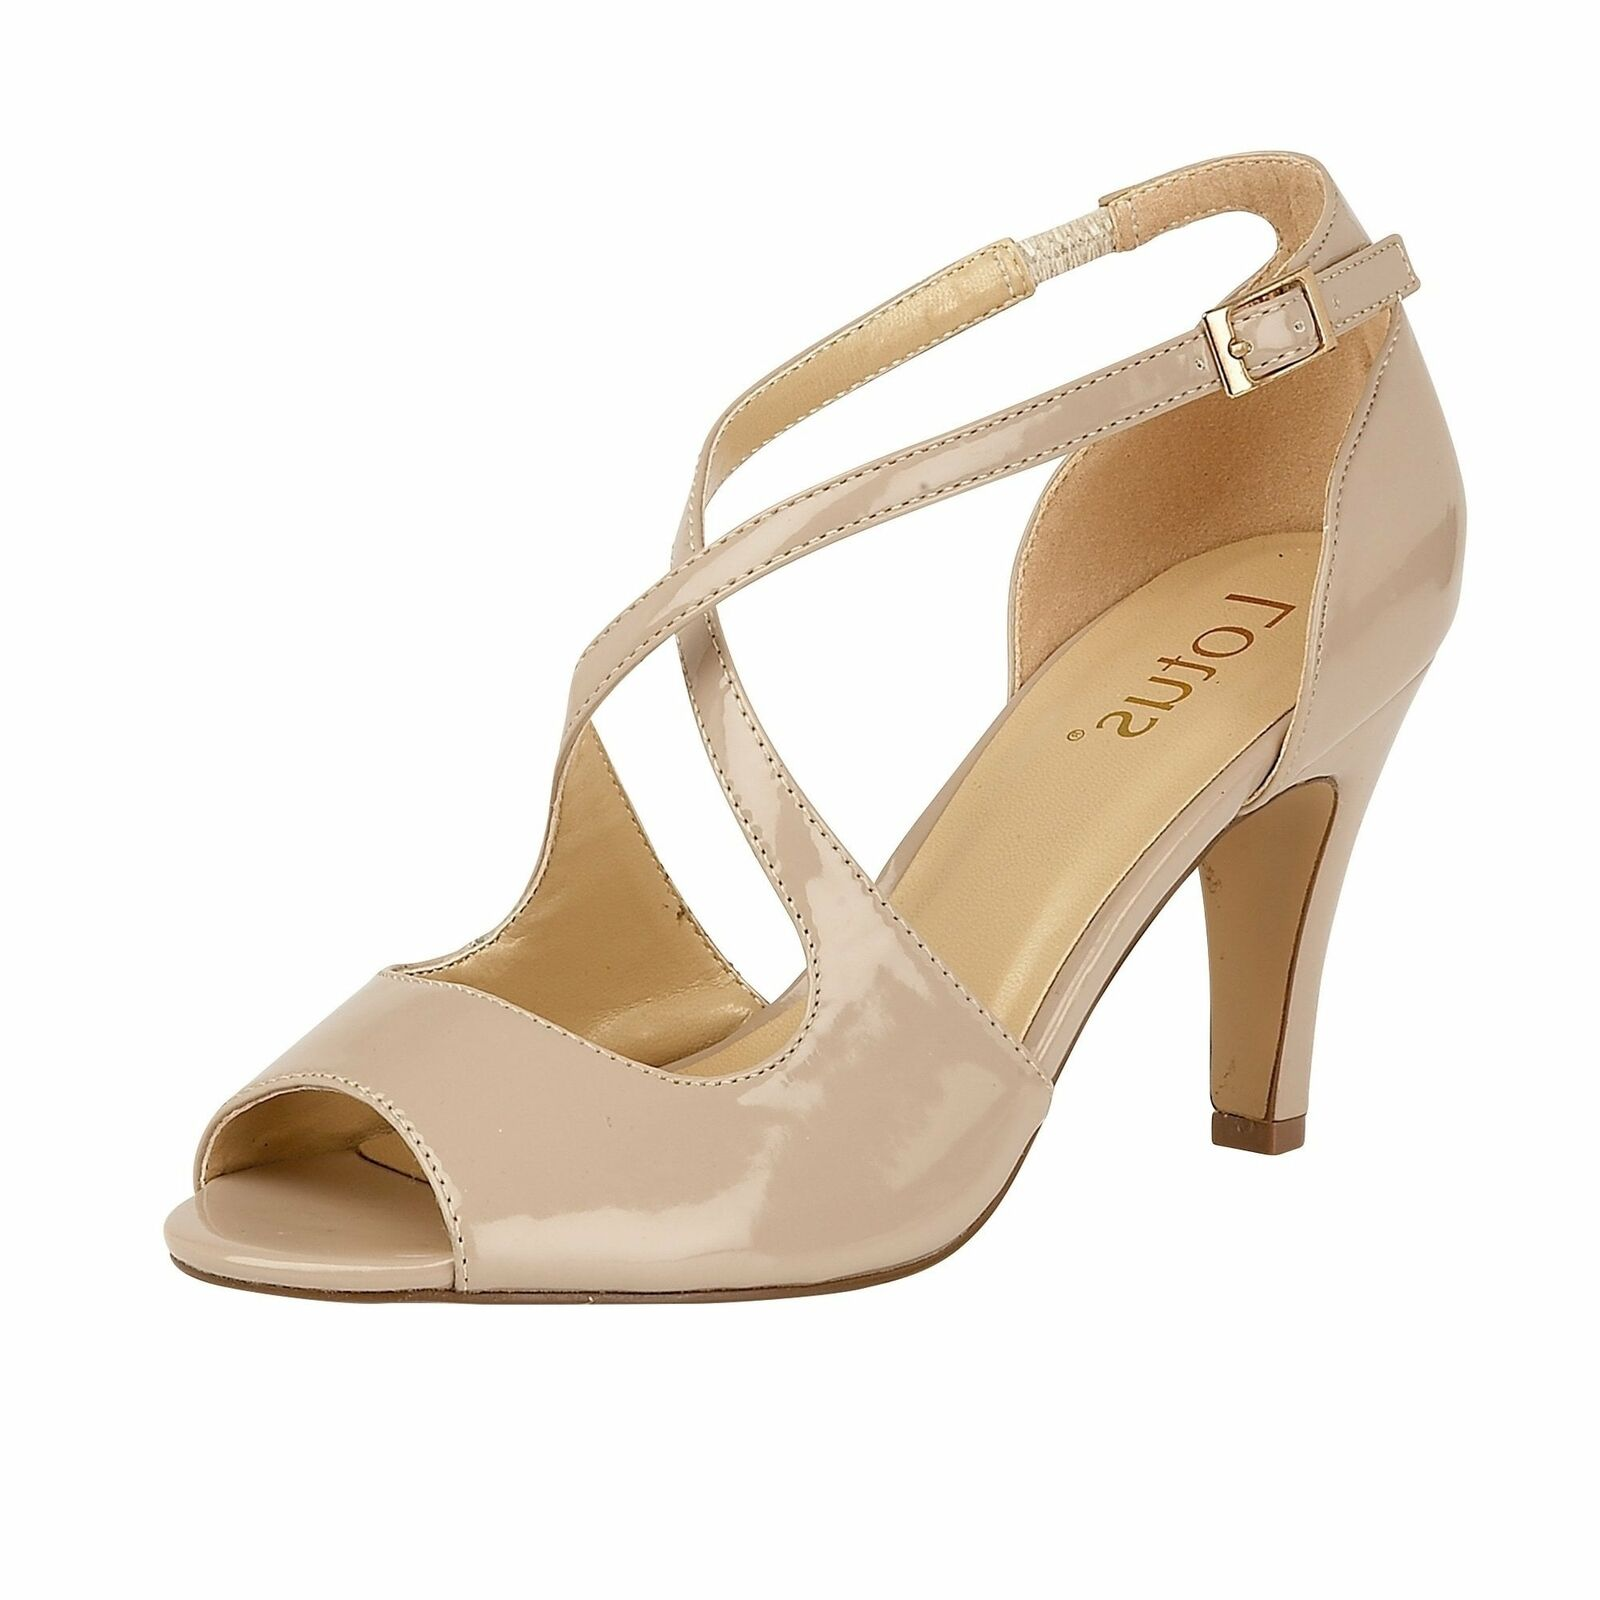 Lotus schuhe Rosalie Nude Patent Court schuhe Lotus a853f9